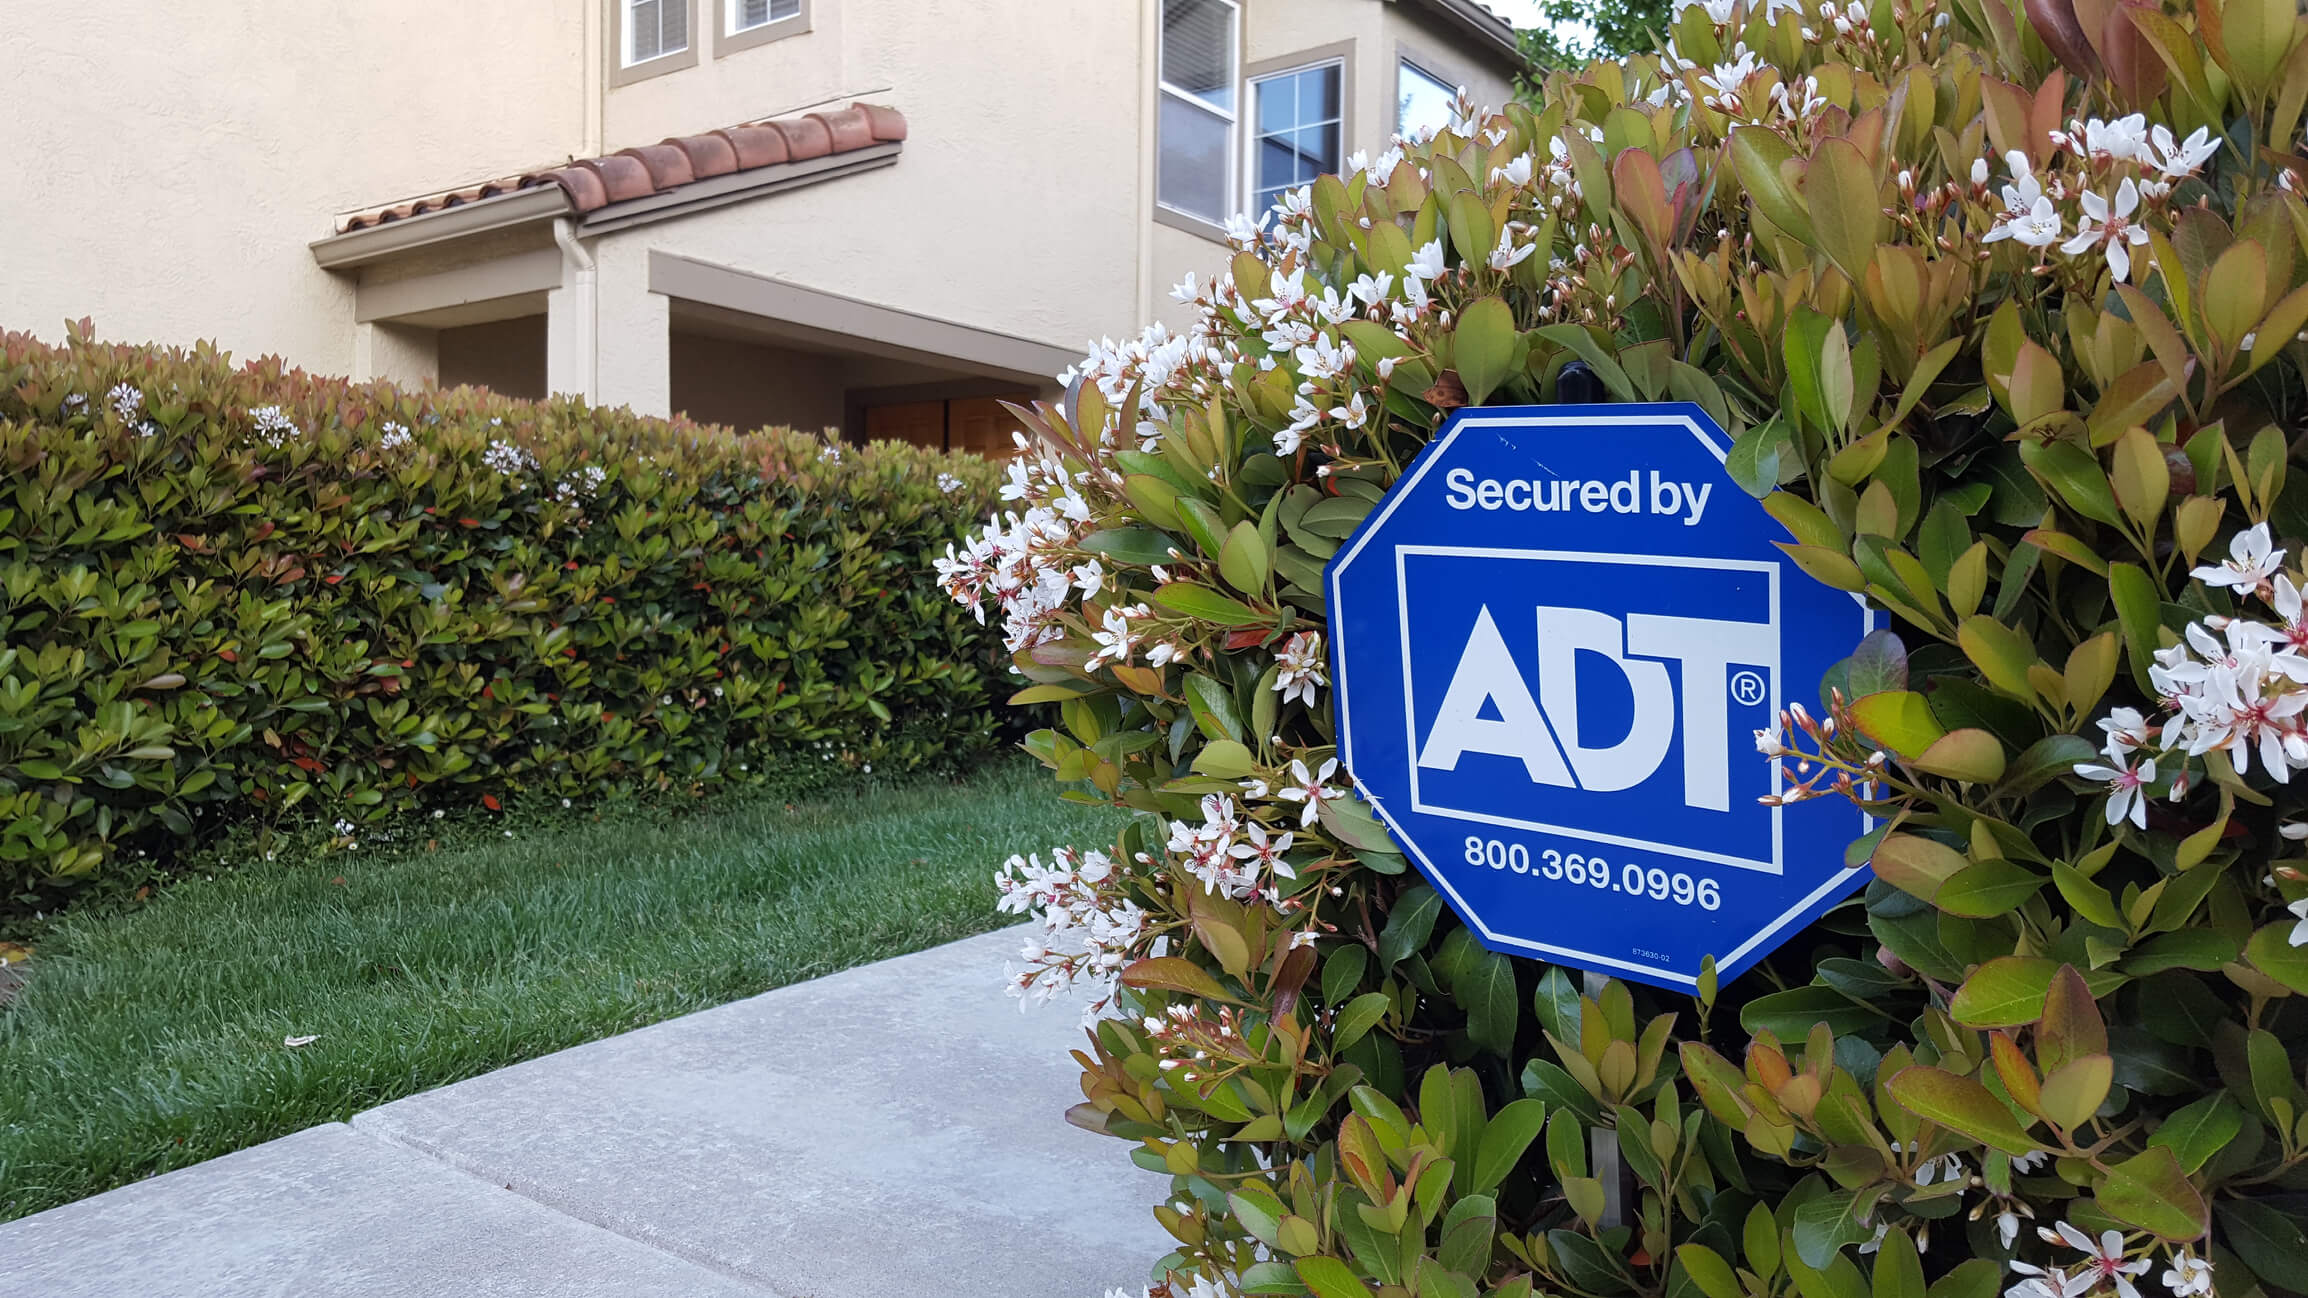 ADT sign in a bush near a driveway